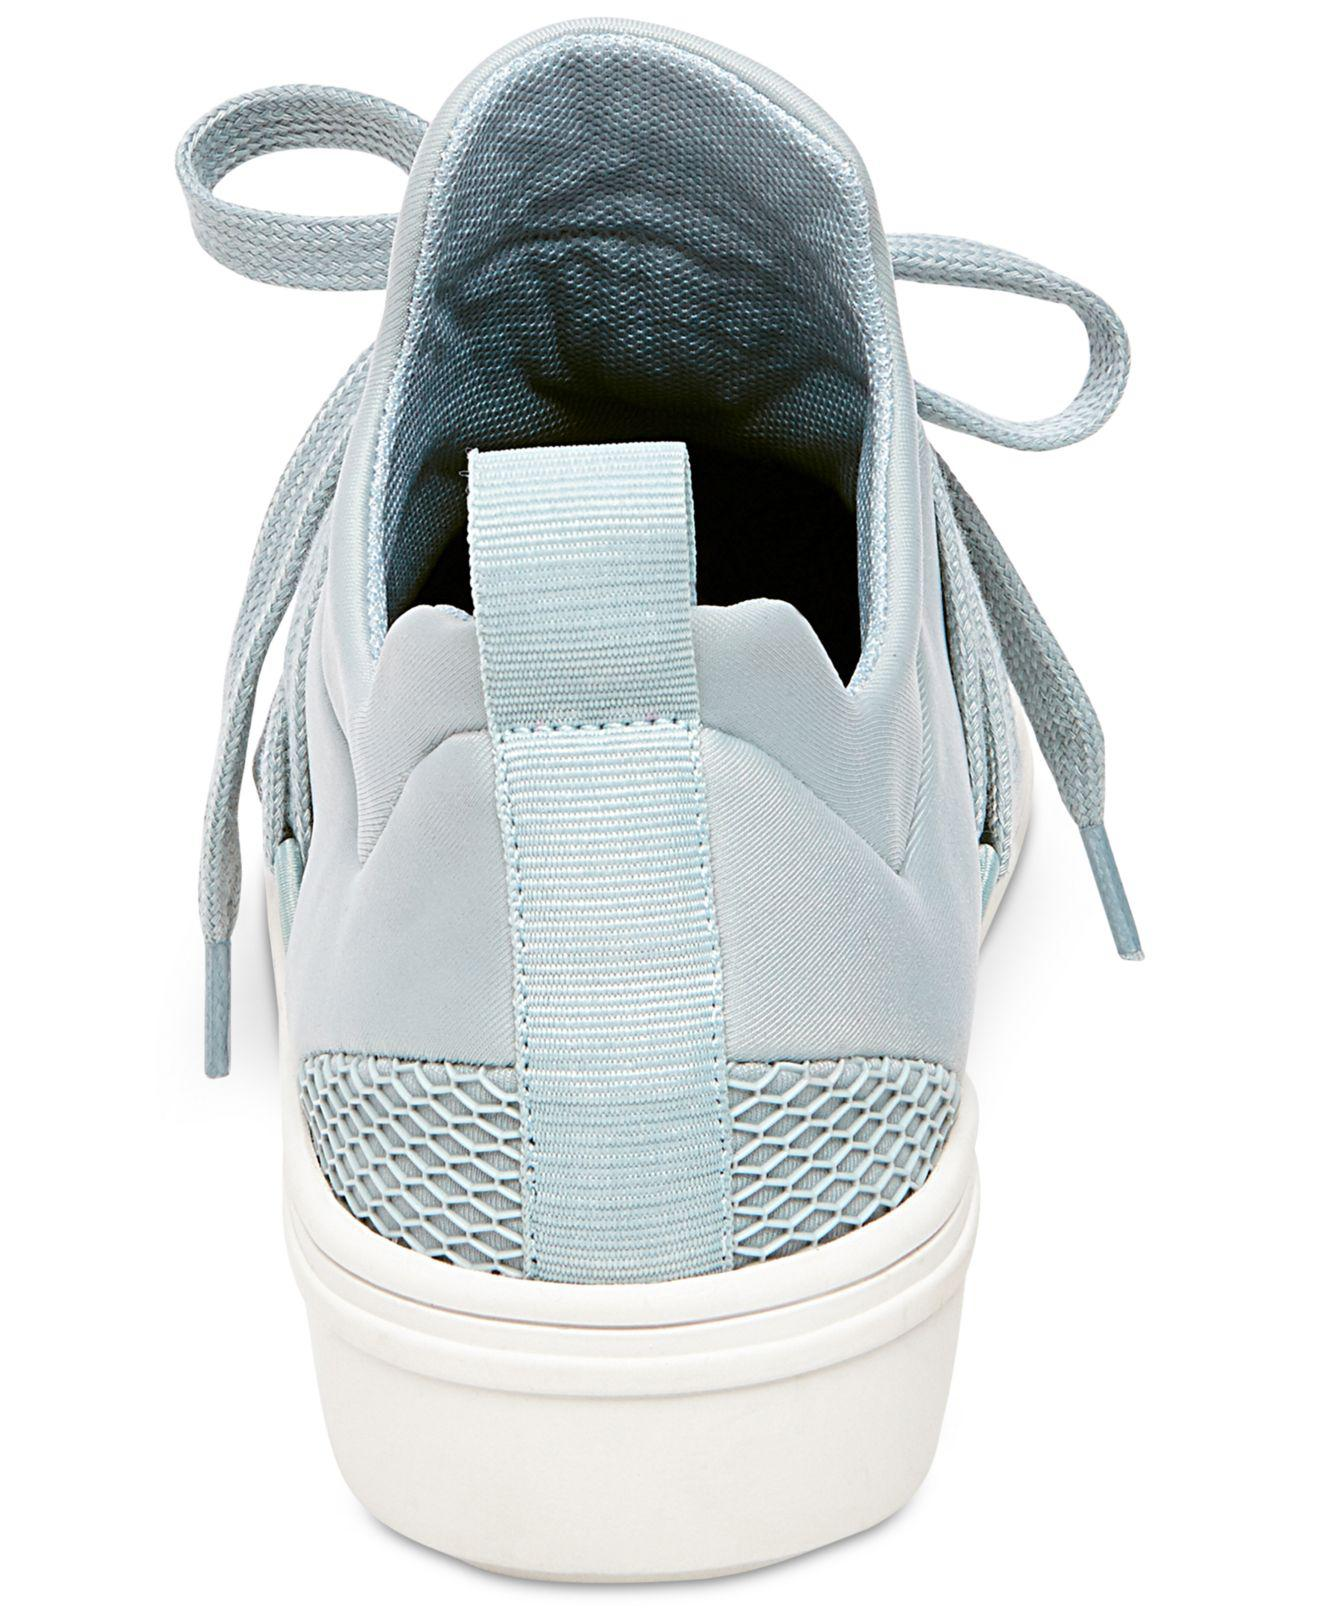 a6052fe3d47 Lyst - Steve Madden Lancer Athletic Sneakers in Blue